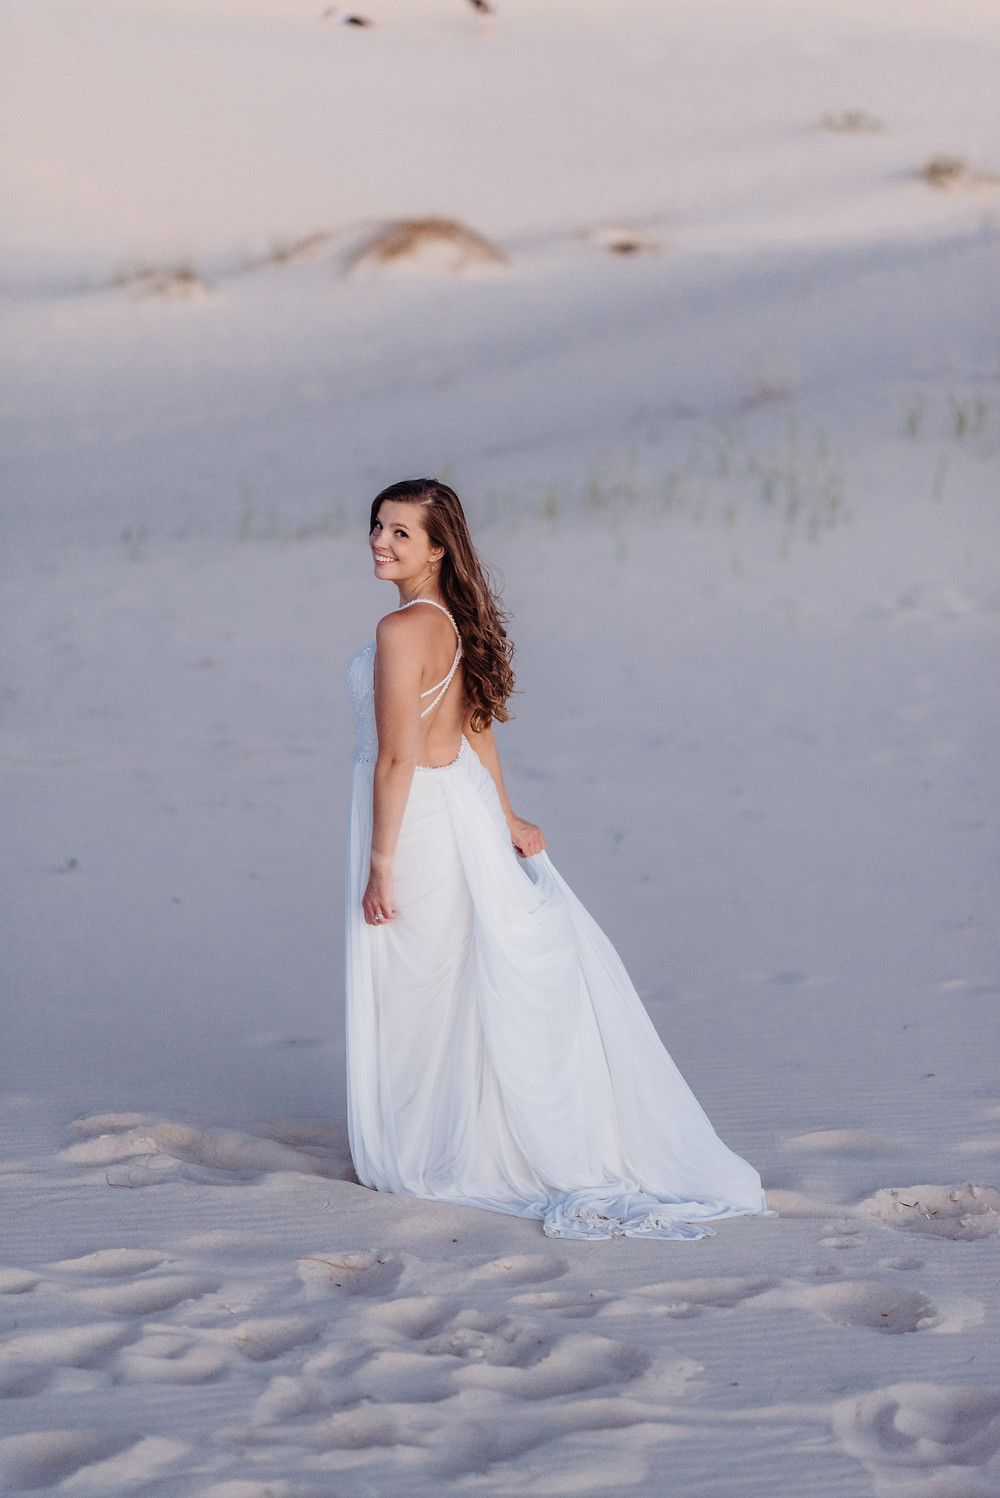 photo of a girl in a wedding dress standing on sand. her back is turned away from the camera to show the detail on the back of the dress but she is looking back over her shoulder at the camera smiling